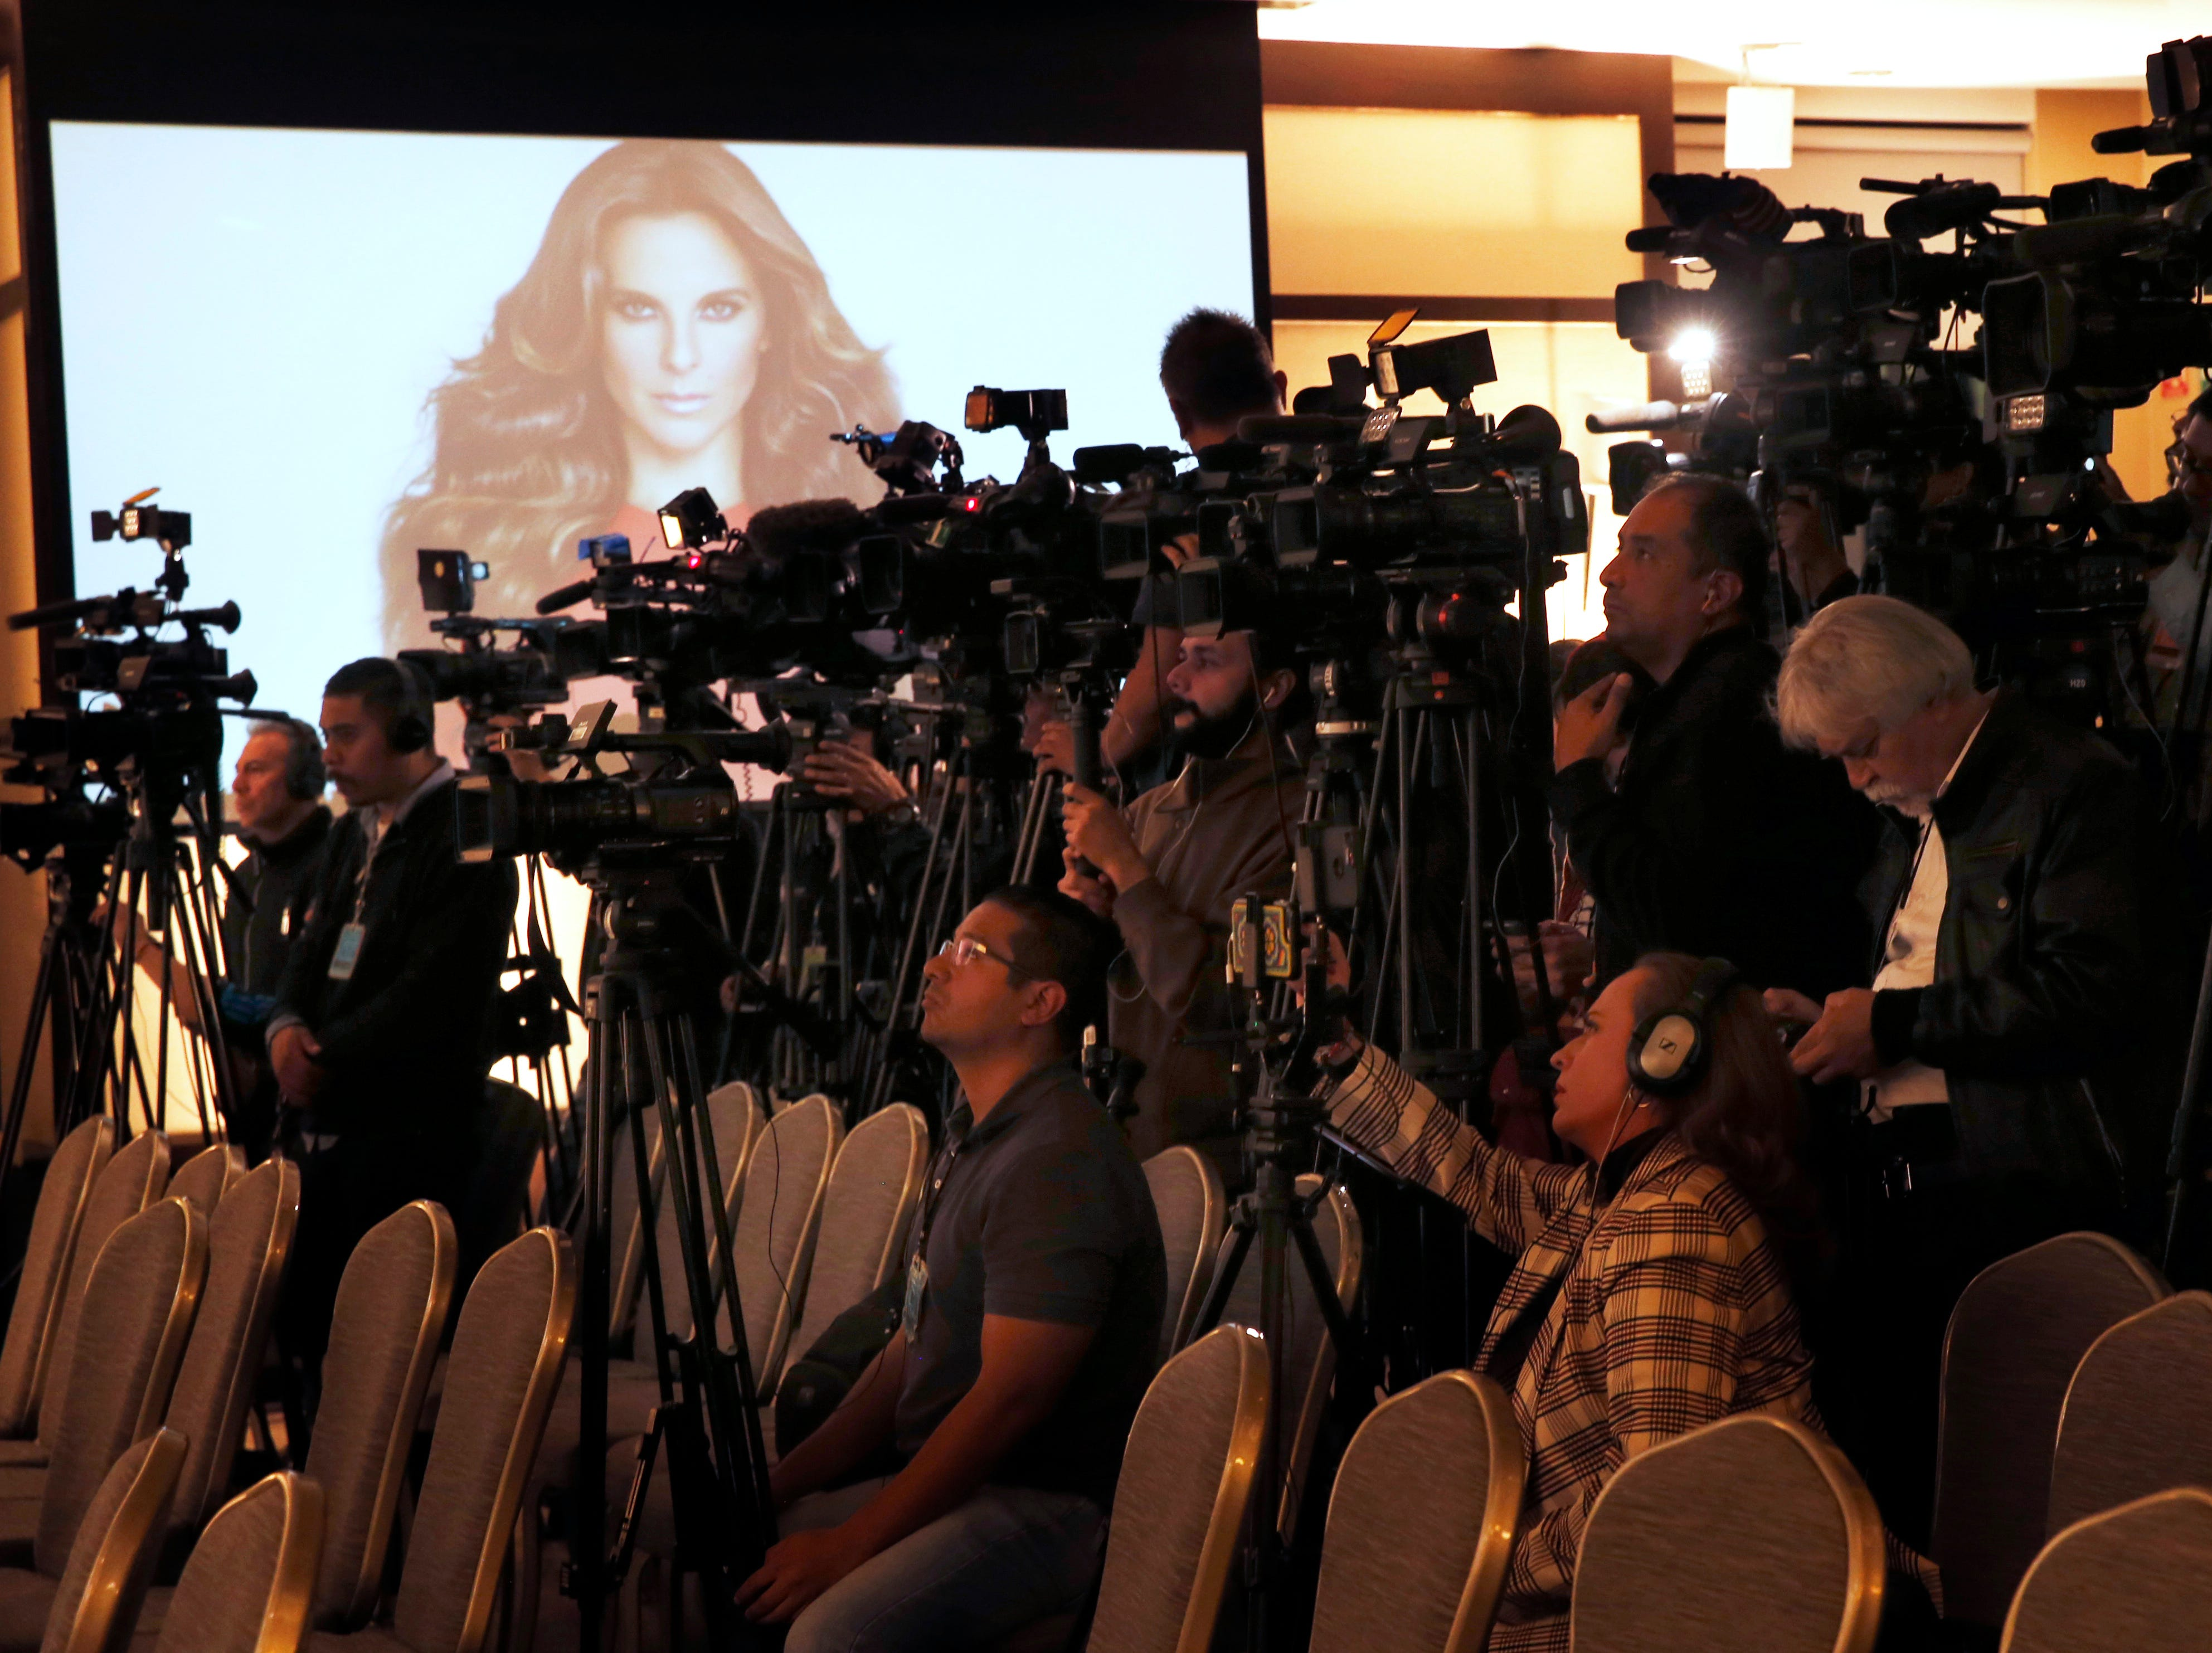 """Members of the press cover a news conference by Mexican actress Kate del Castillo in Mexico City, Thursday, Dec. 20, 2018. Del Castillo spoke about events surrounding her 2015 meeting with Joaquin """"El Chapo"""" Guzman, a Mexican drug lord who at the time was hiding from authorities. When del Castillo met with Guzman, she said it was with the intent to make a film about his life."""